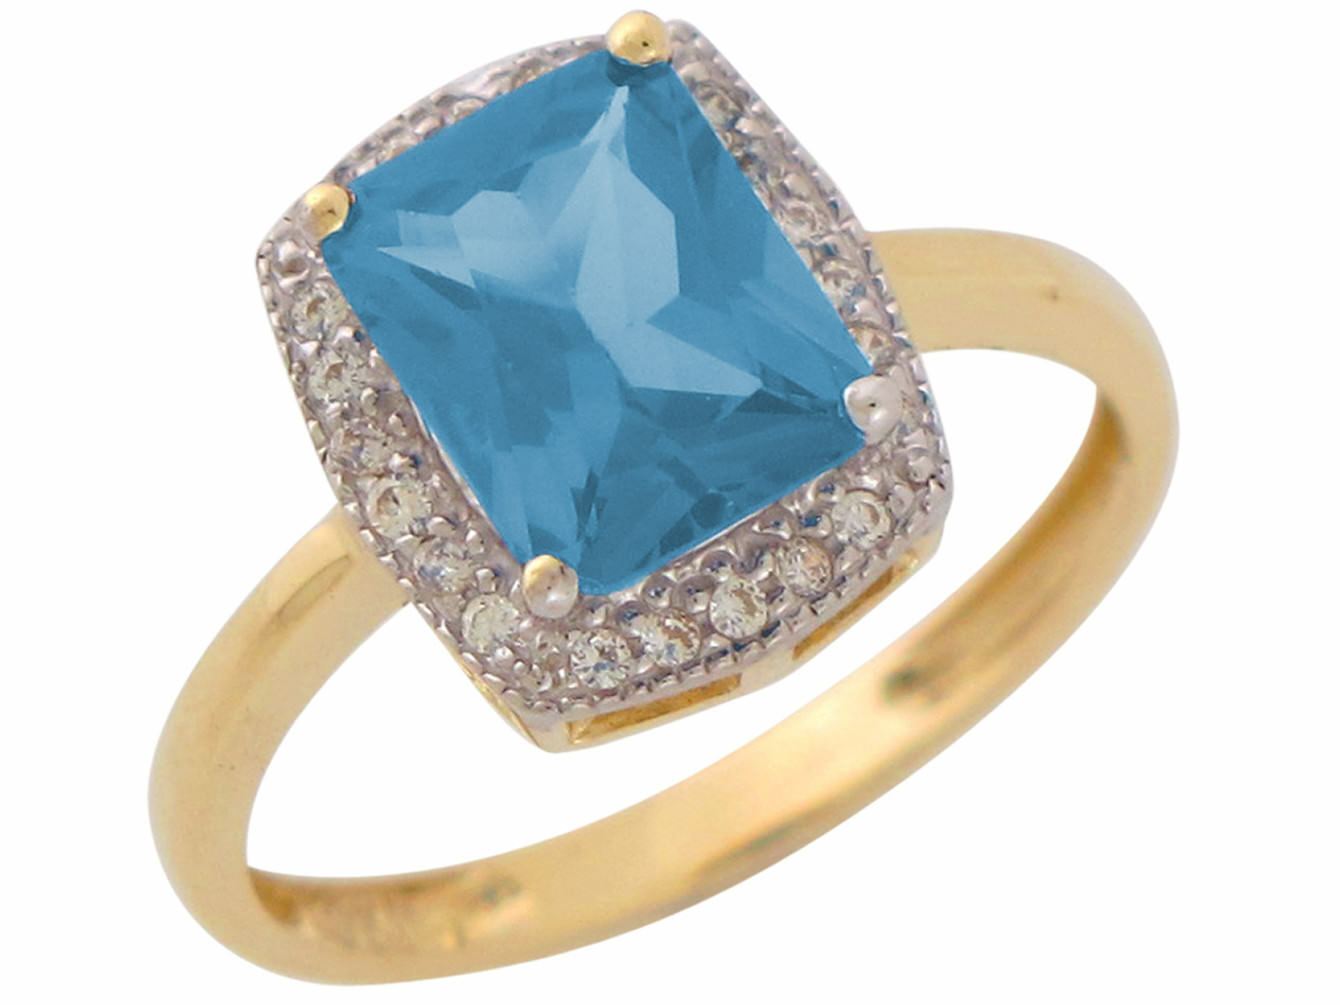 10k or 14k Real gold Simulated Aquamarine White CZ Ladies March Birthstone Ring